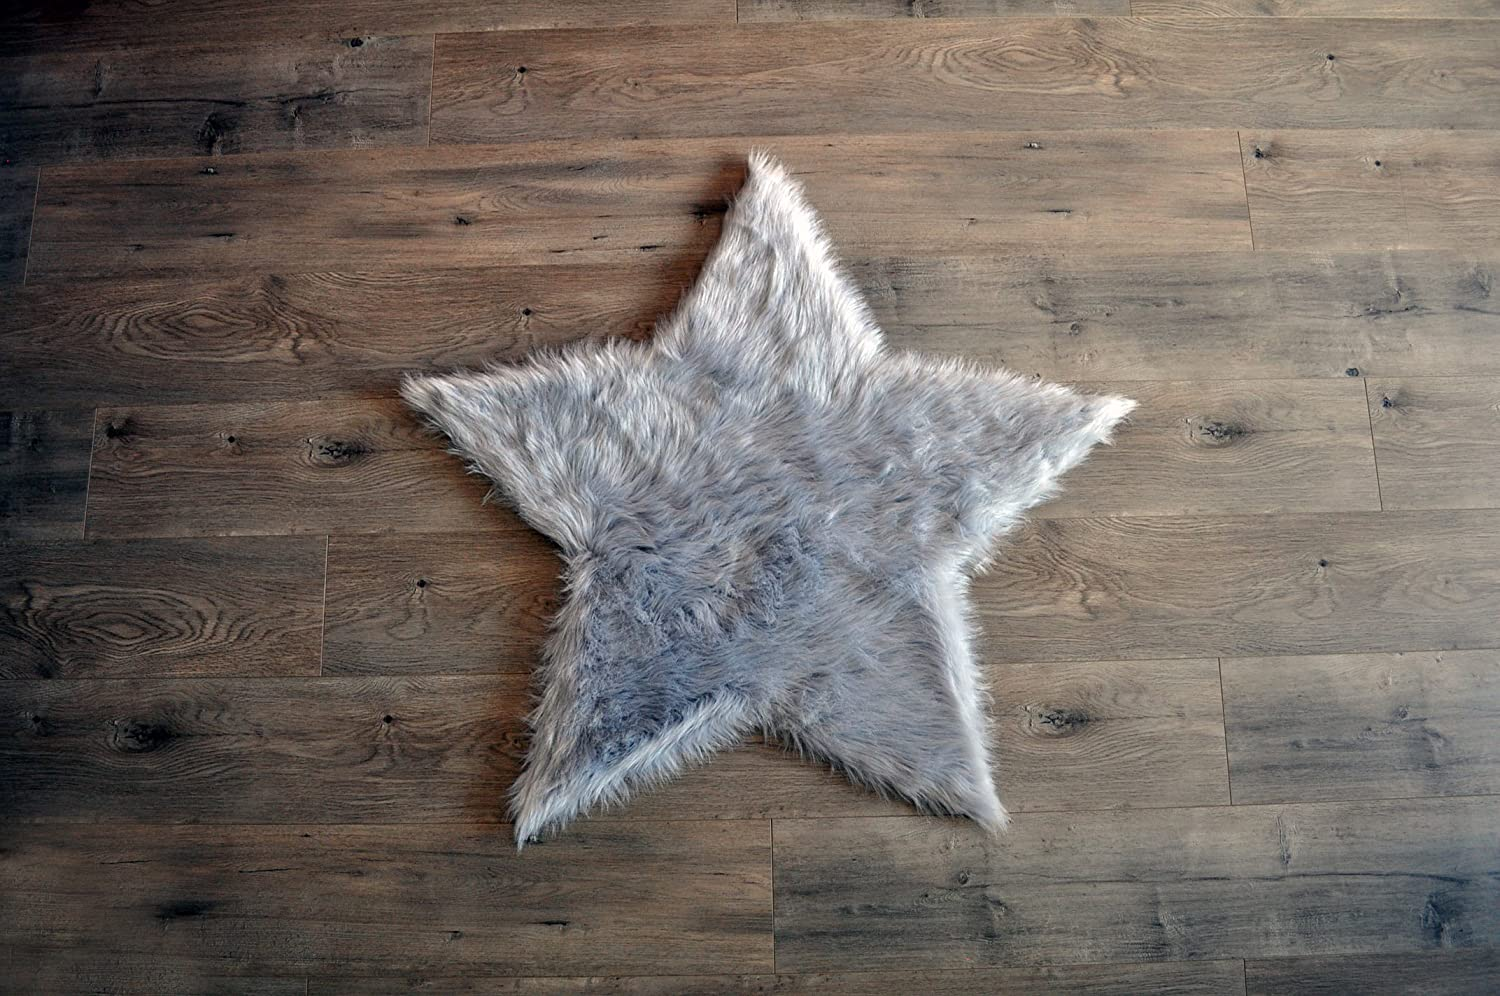 B078HR1RJG Machine Washable Faux Sheepskin Light Grey Star Area Rug 3' x 3' - Soft and Silky - Perfect for Baby's Room, Nursery, playroom - Fake Fur Area Rug (Star Large Light Grey) 915tPd-aRpL